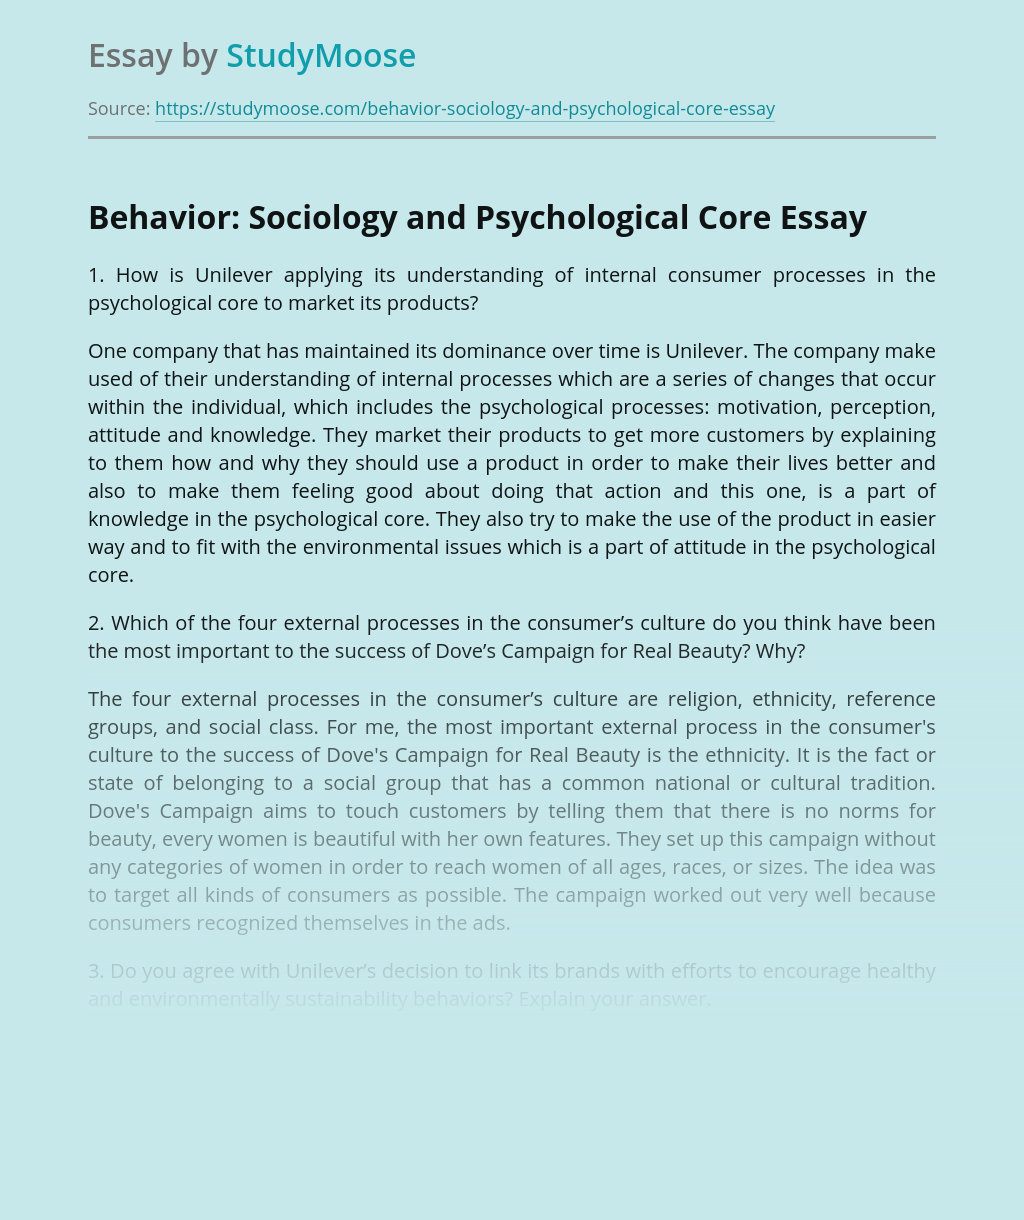 Behavior: Sociology and Psychological Core